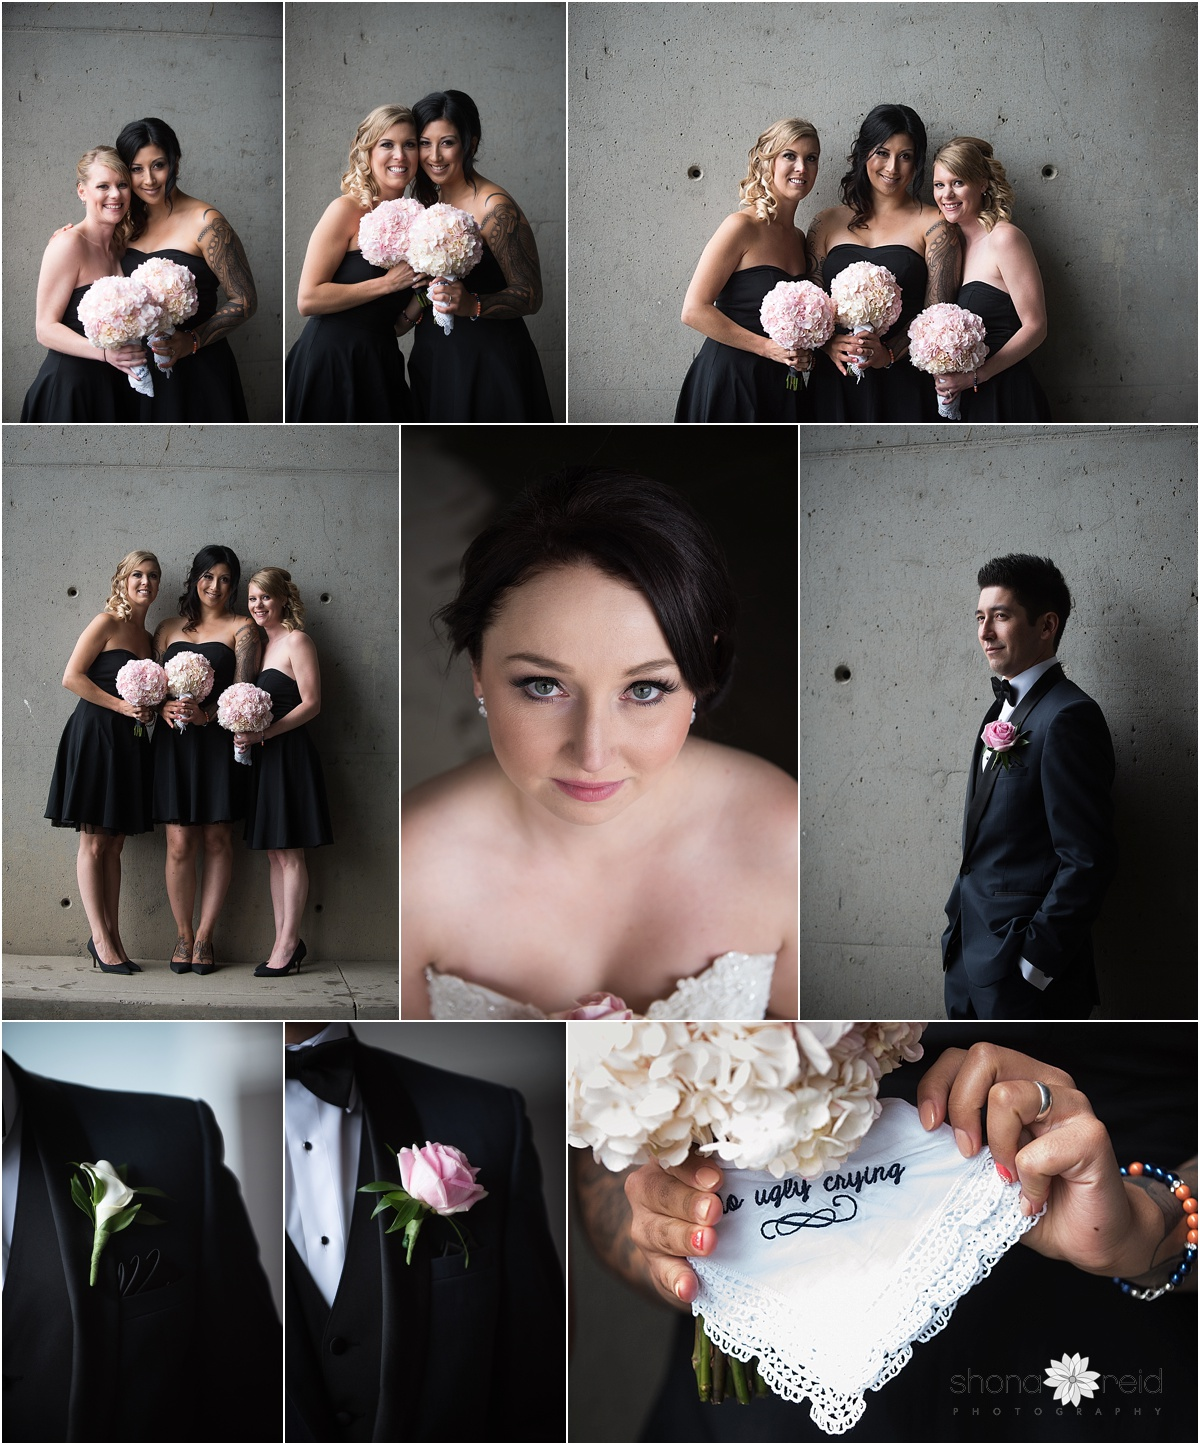 Bridal party wedding photographs Edmonton